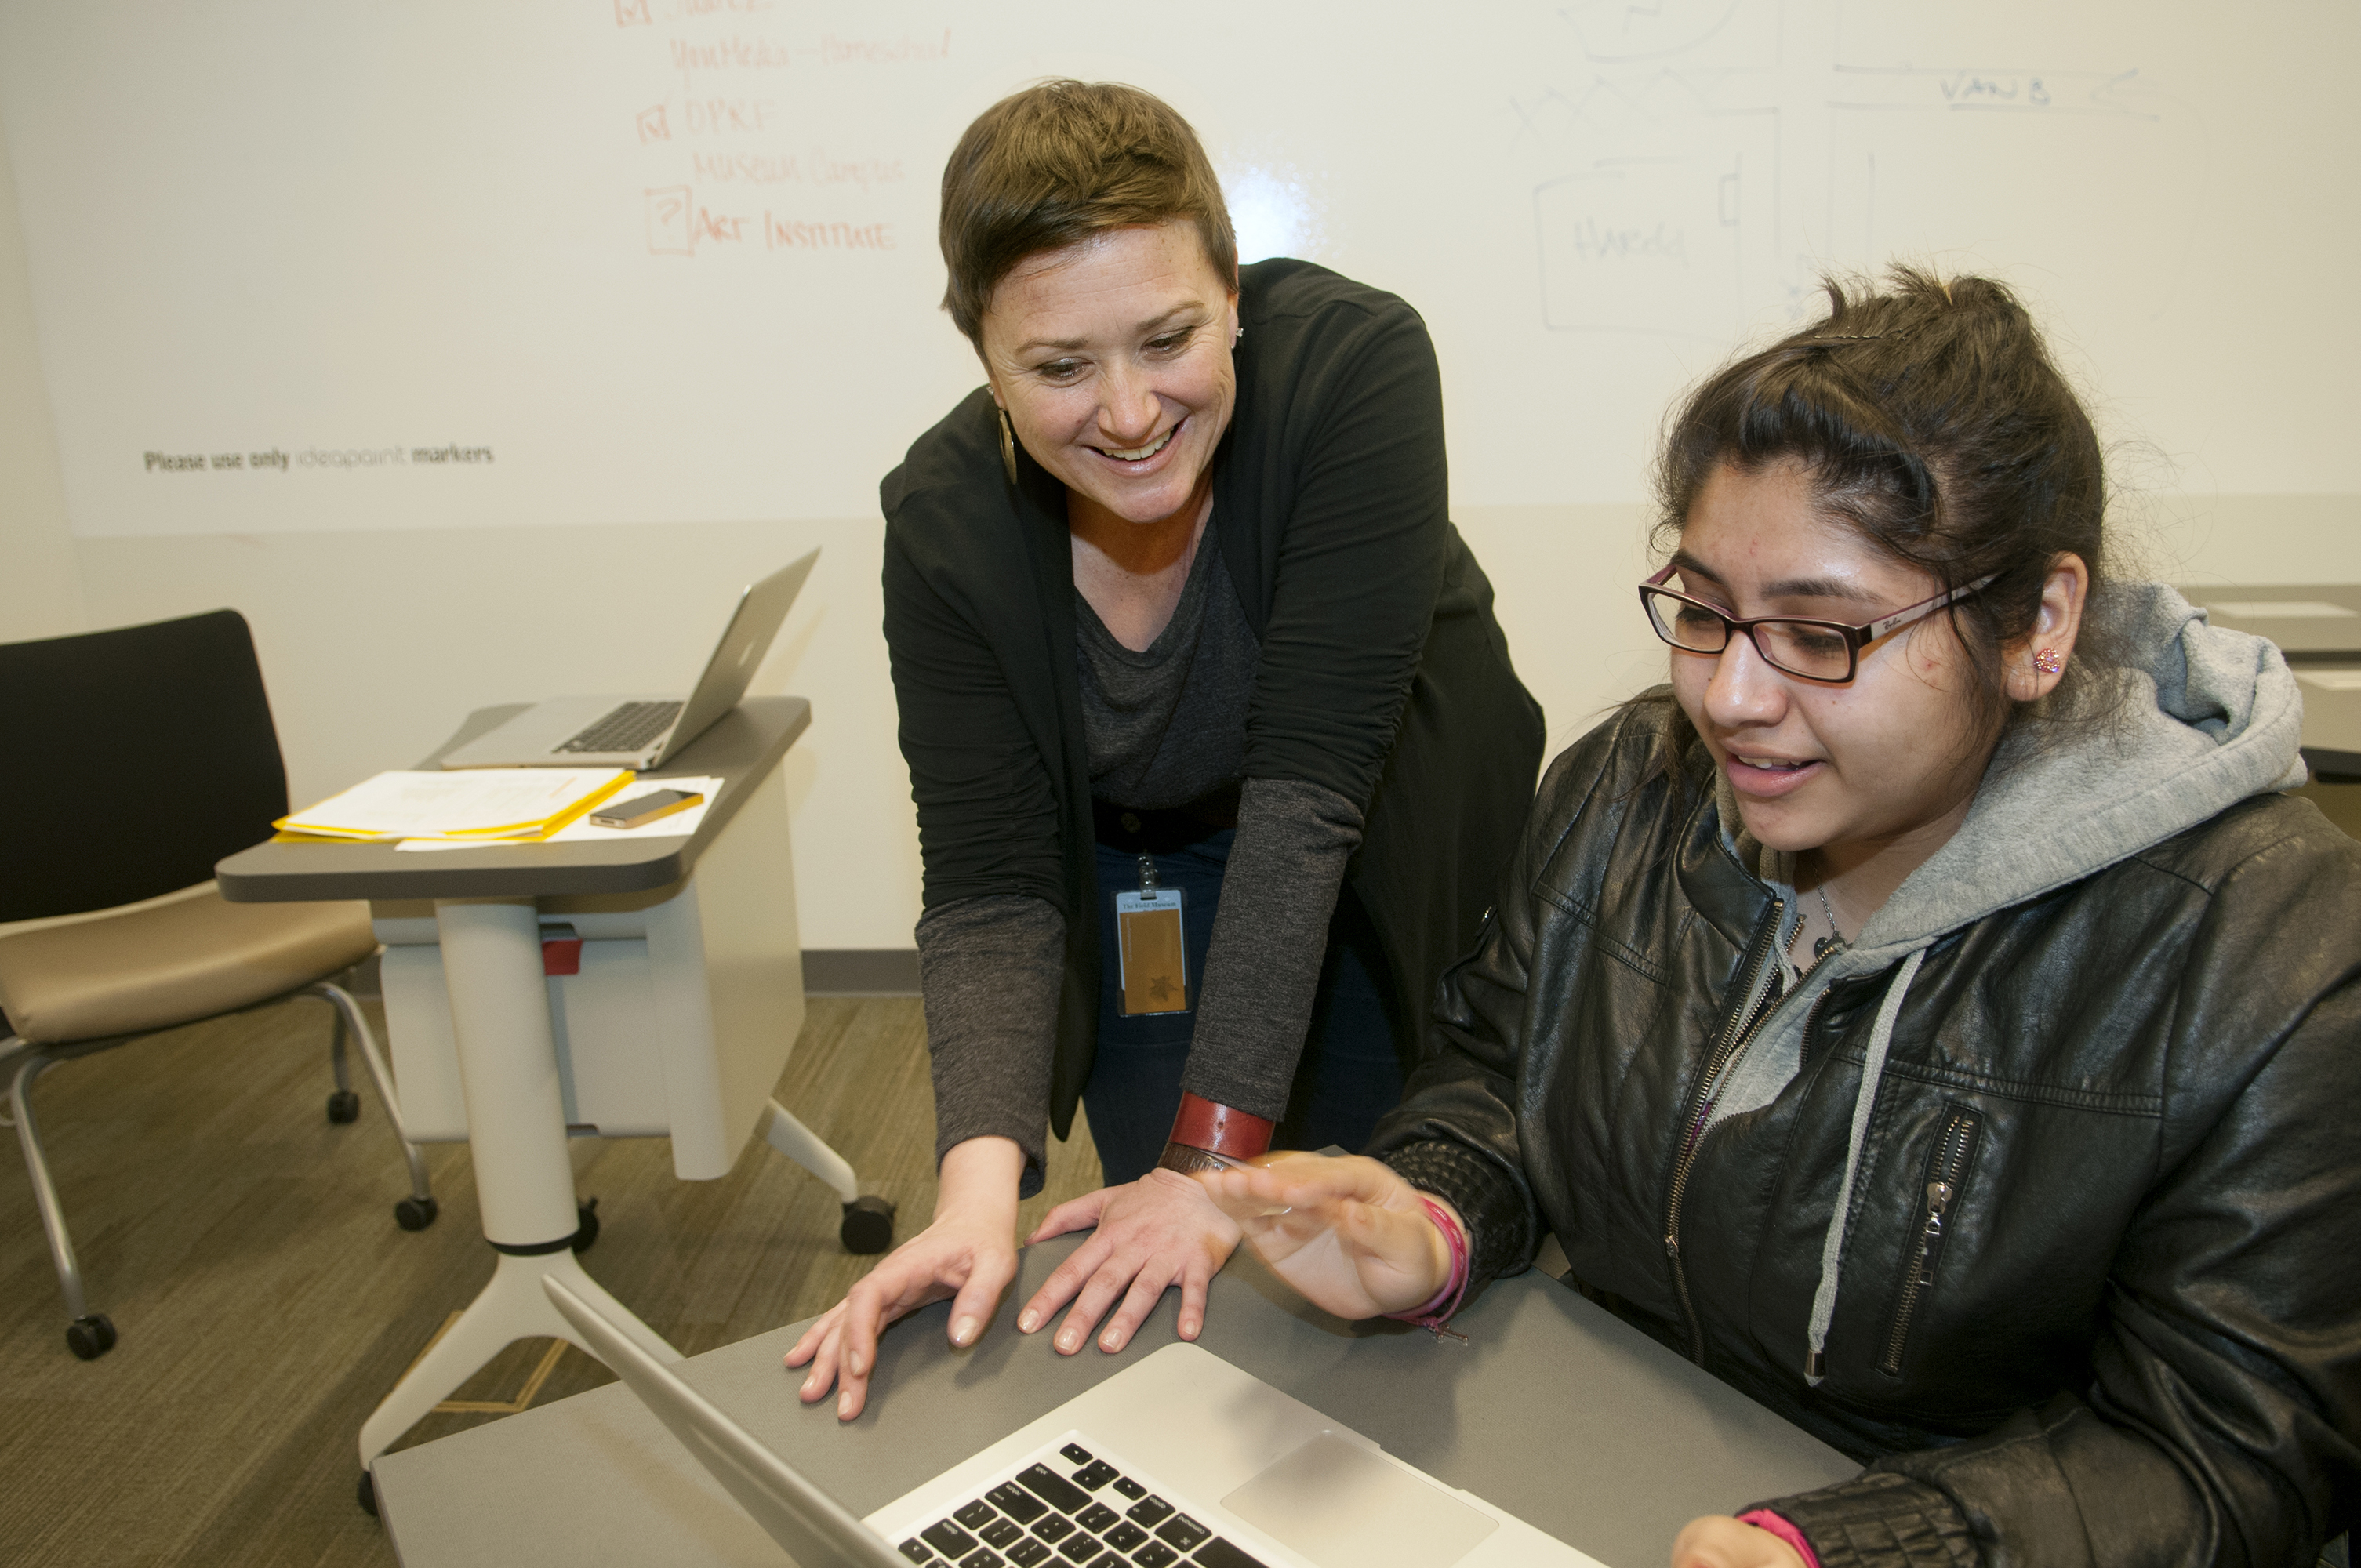 One women sits at a laptop while another one women stands close by to help. Both smile and have their hands over the keyboard.